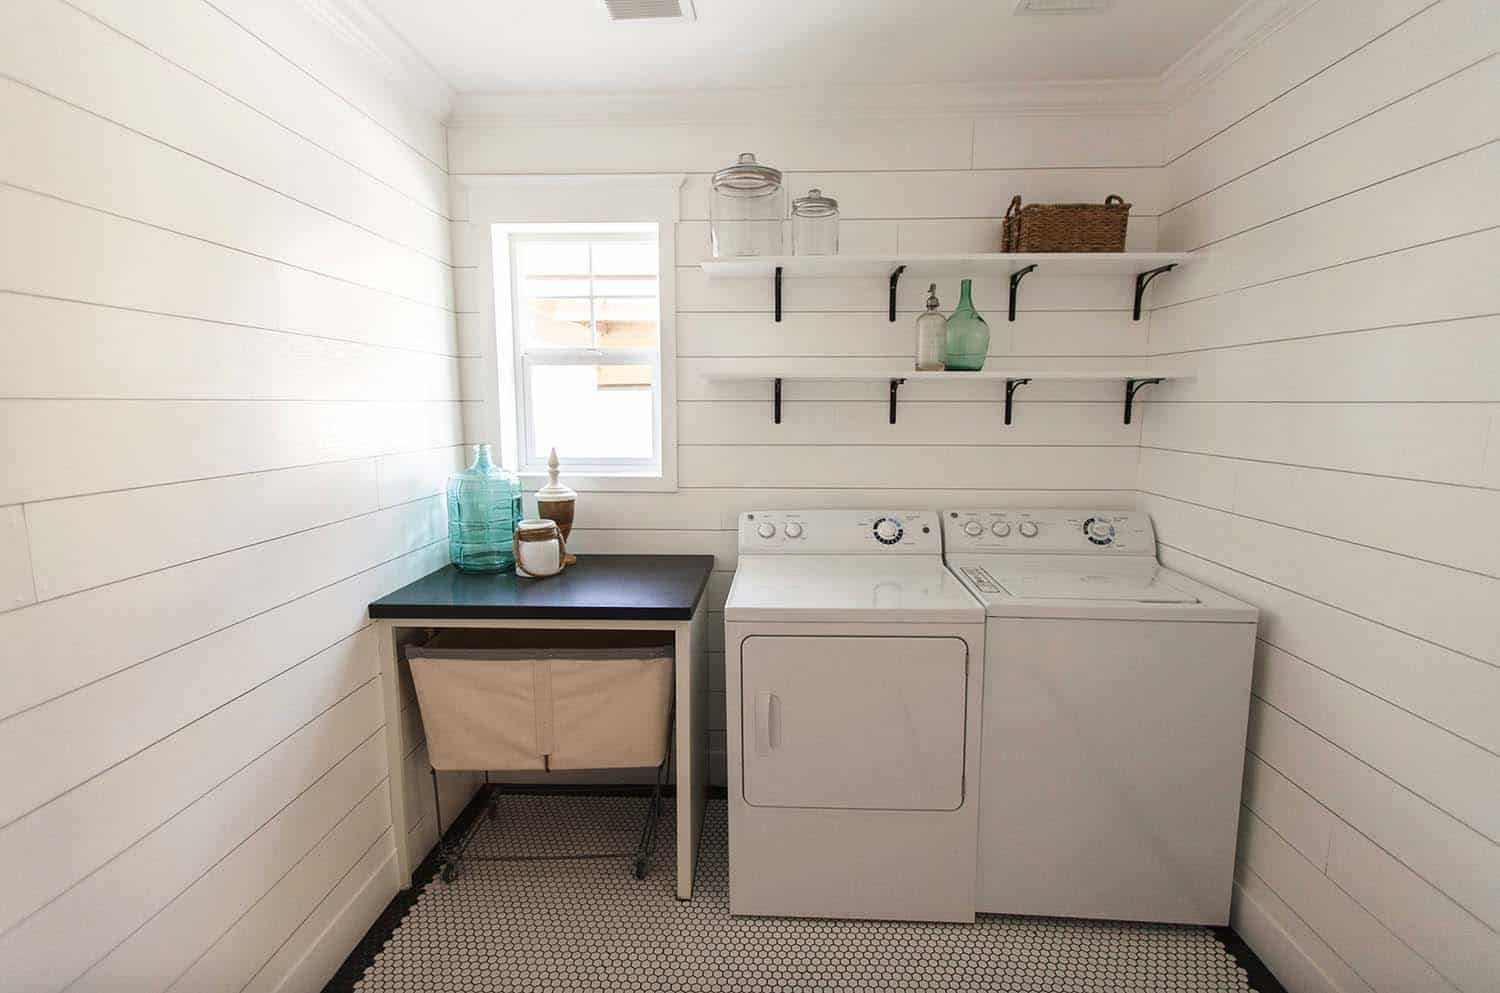 Functional-Stylish Small Laundry Rooms-13-1 Kindesign